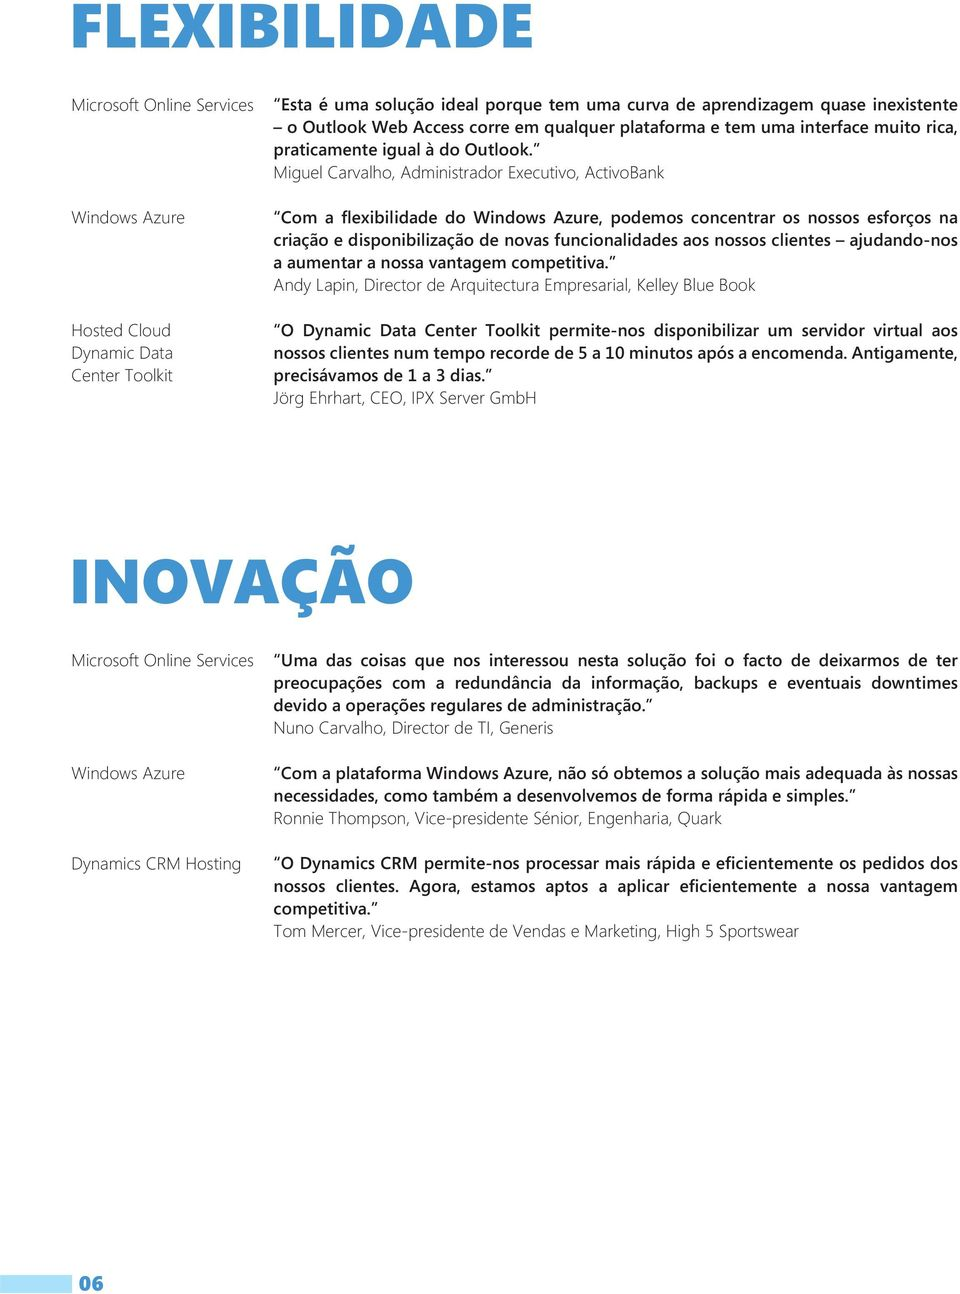 Miguel Carvalho, Administrador Executivo, ActivoBank Com a flexibilidade do Windows Azure, podemos concentrar os nossos esforços na criação e disponibilização de novas funcionalidades aos nossos